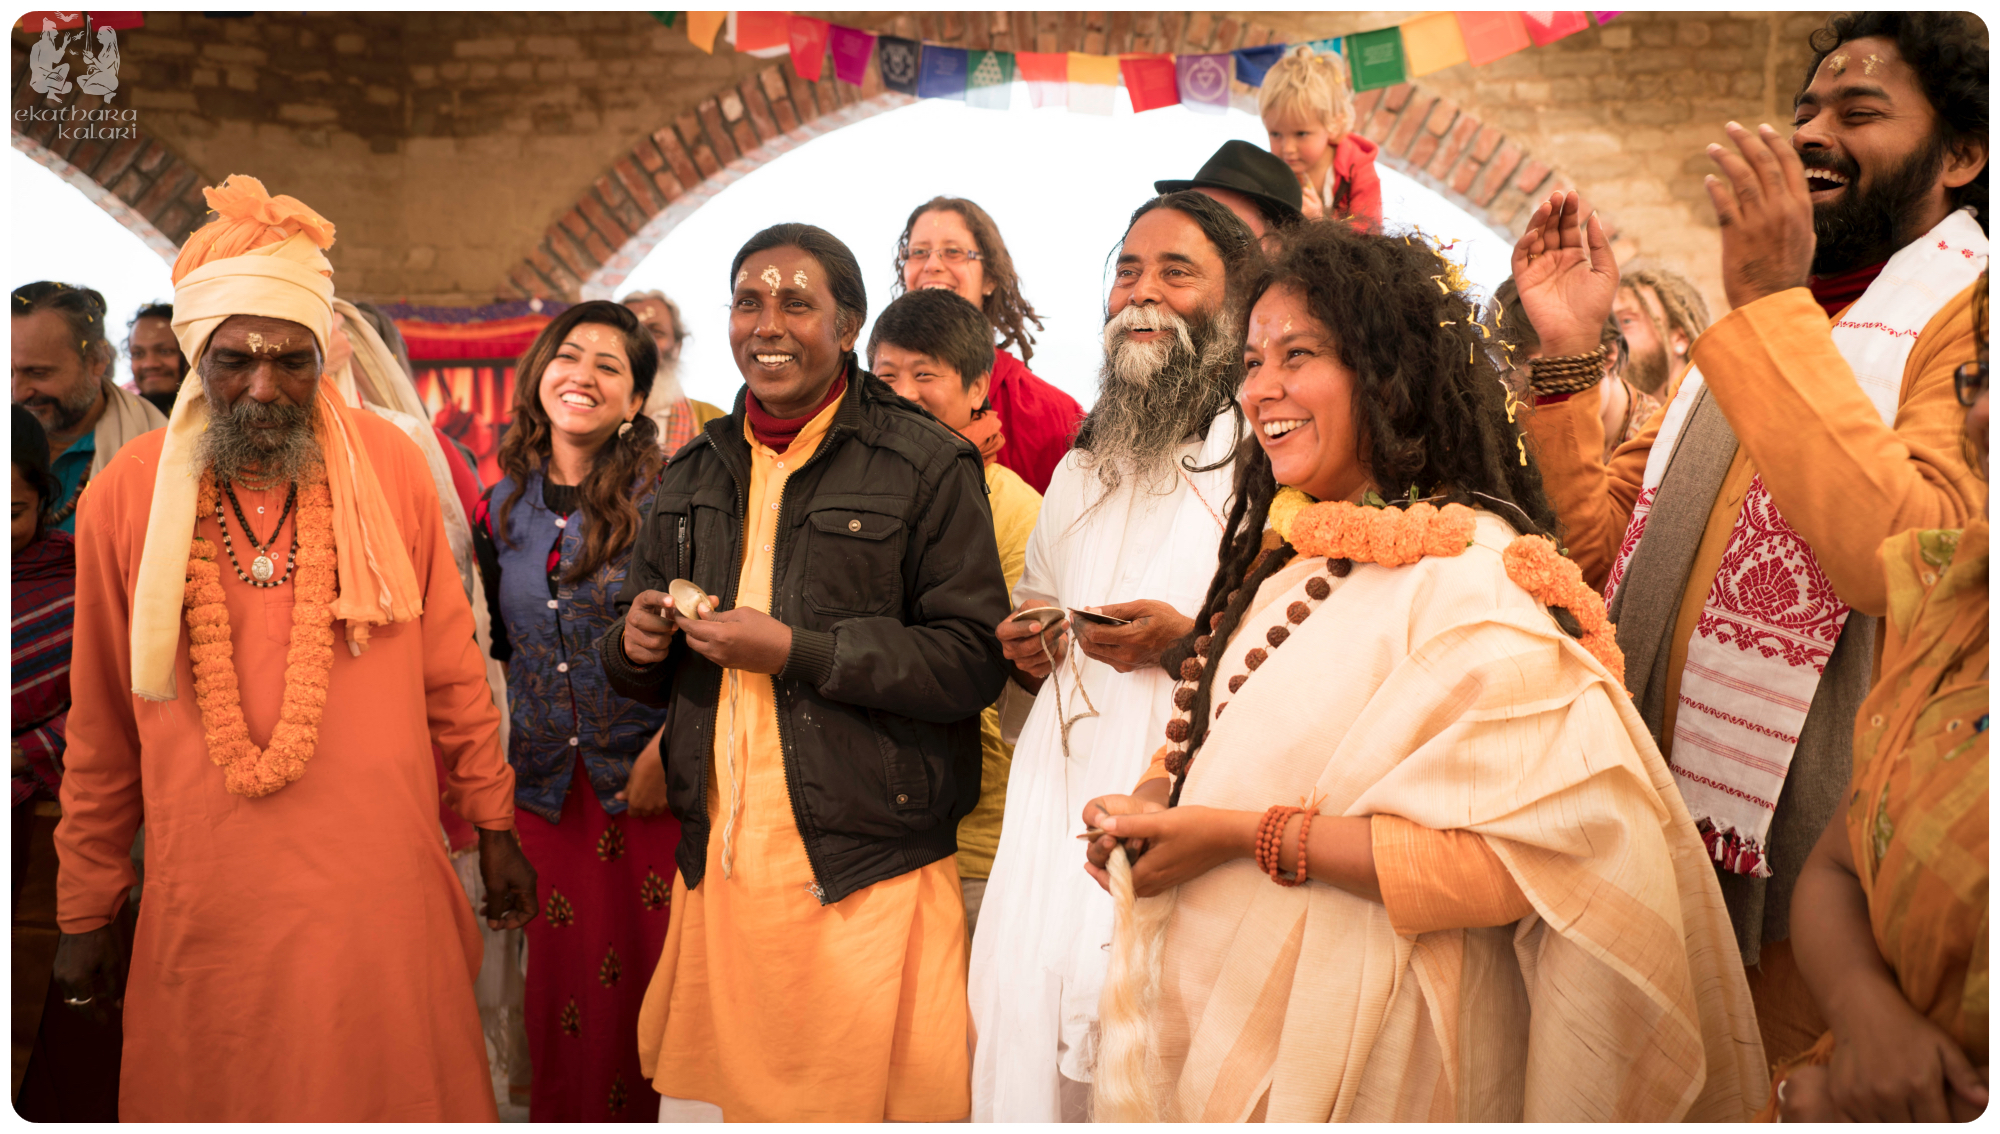 Our dear teacher Parvathy Ma surrounded by Baul masters and new friends singing to Radha Krishna.